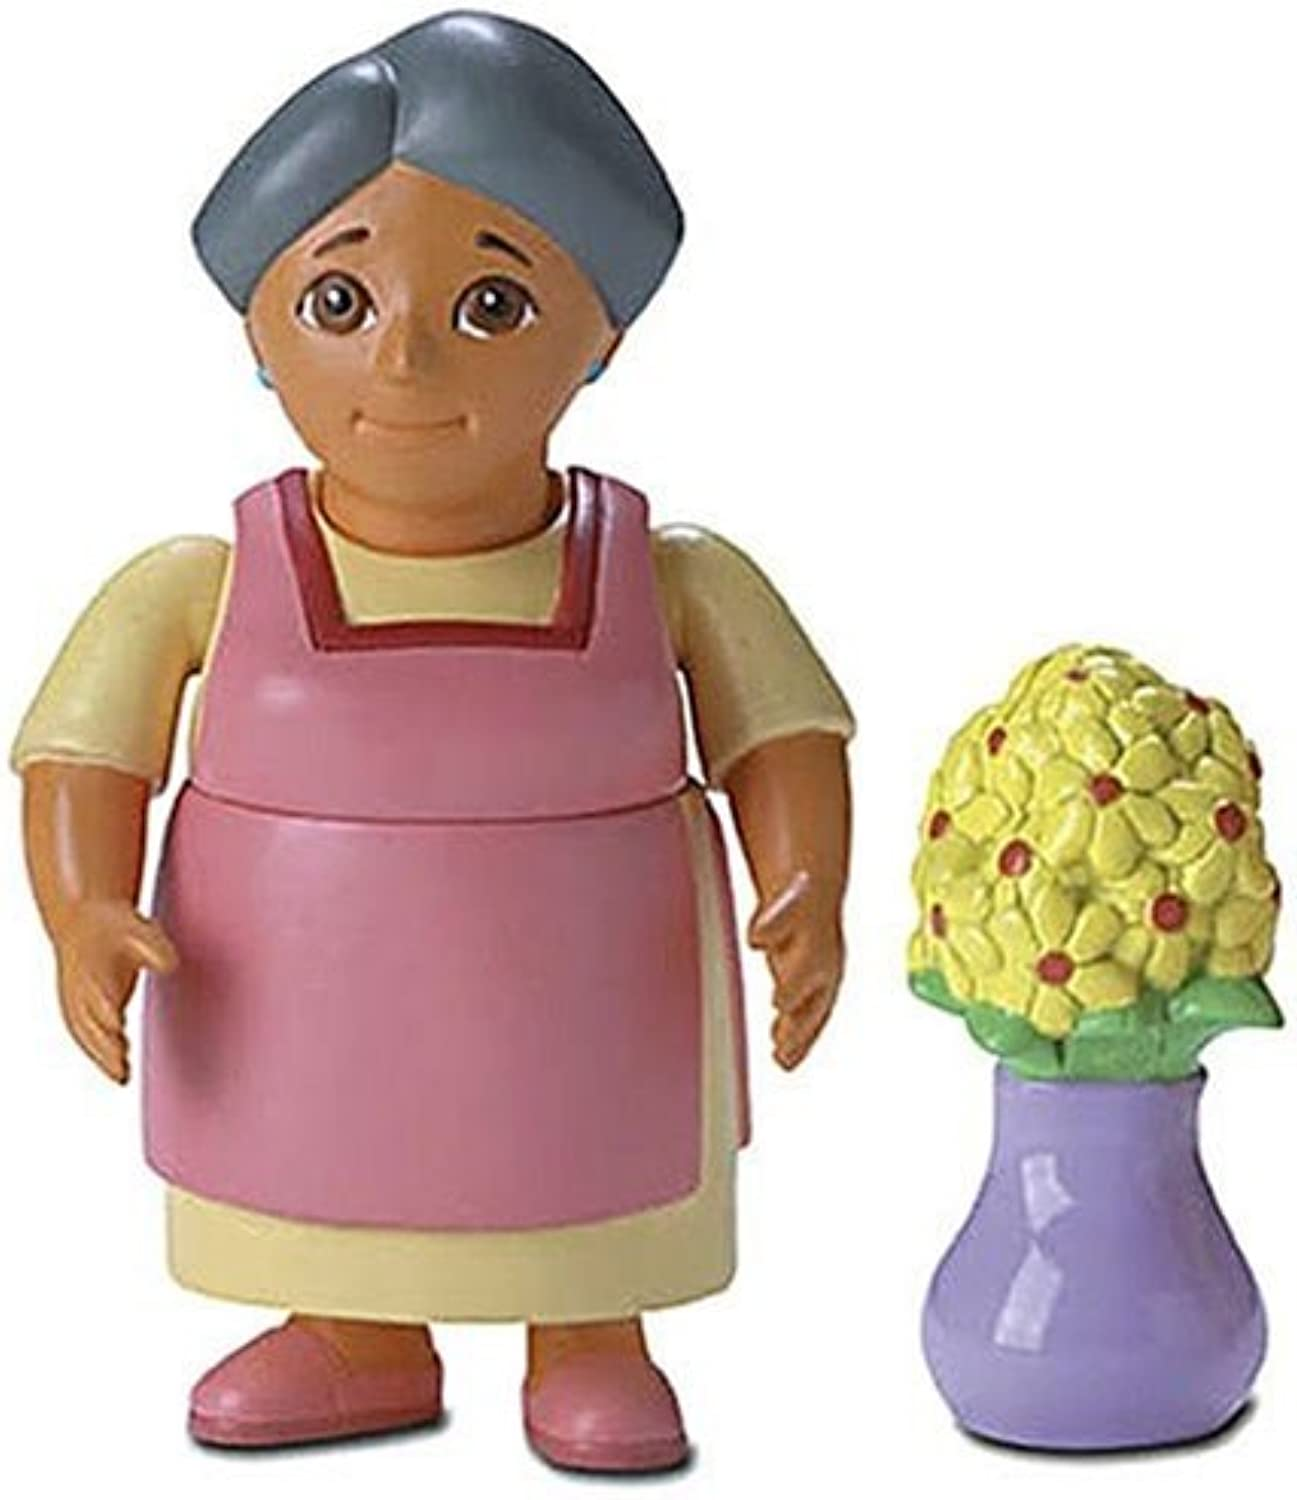 Dora the Explorer  Figures for Dora's Talking Doll House  Abuela with Flowers by Toys